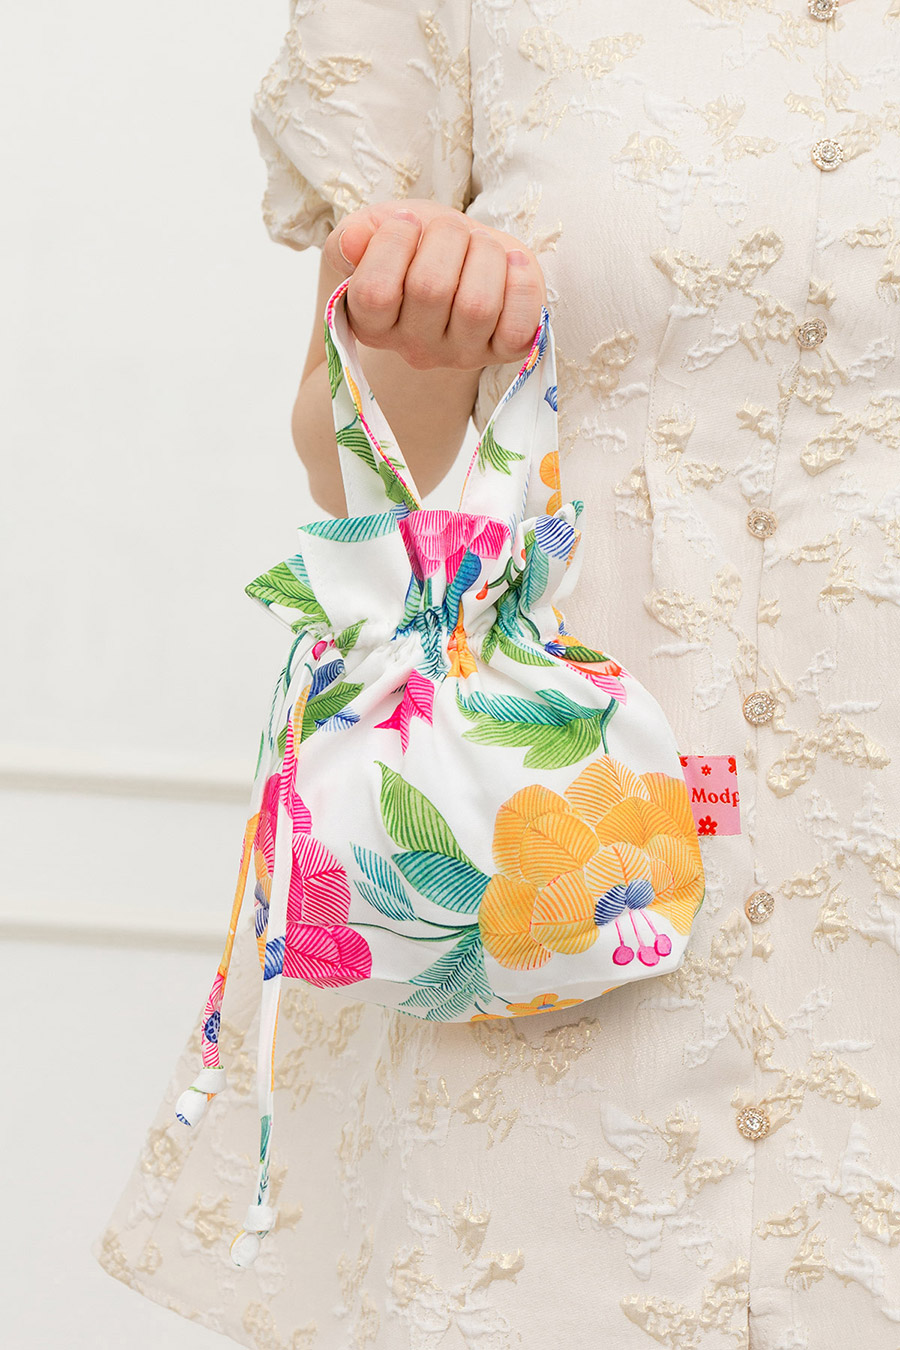 MANDARIN ORANGE BAG - CHRYSANTHE [BY MODPARADE]